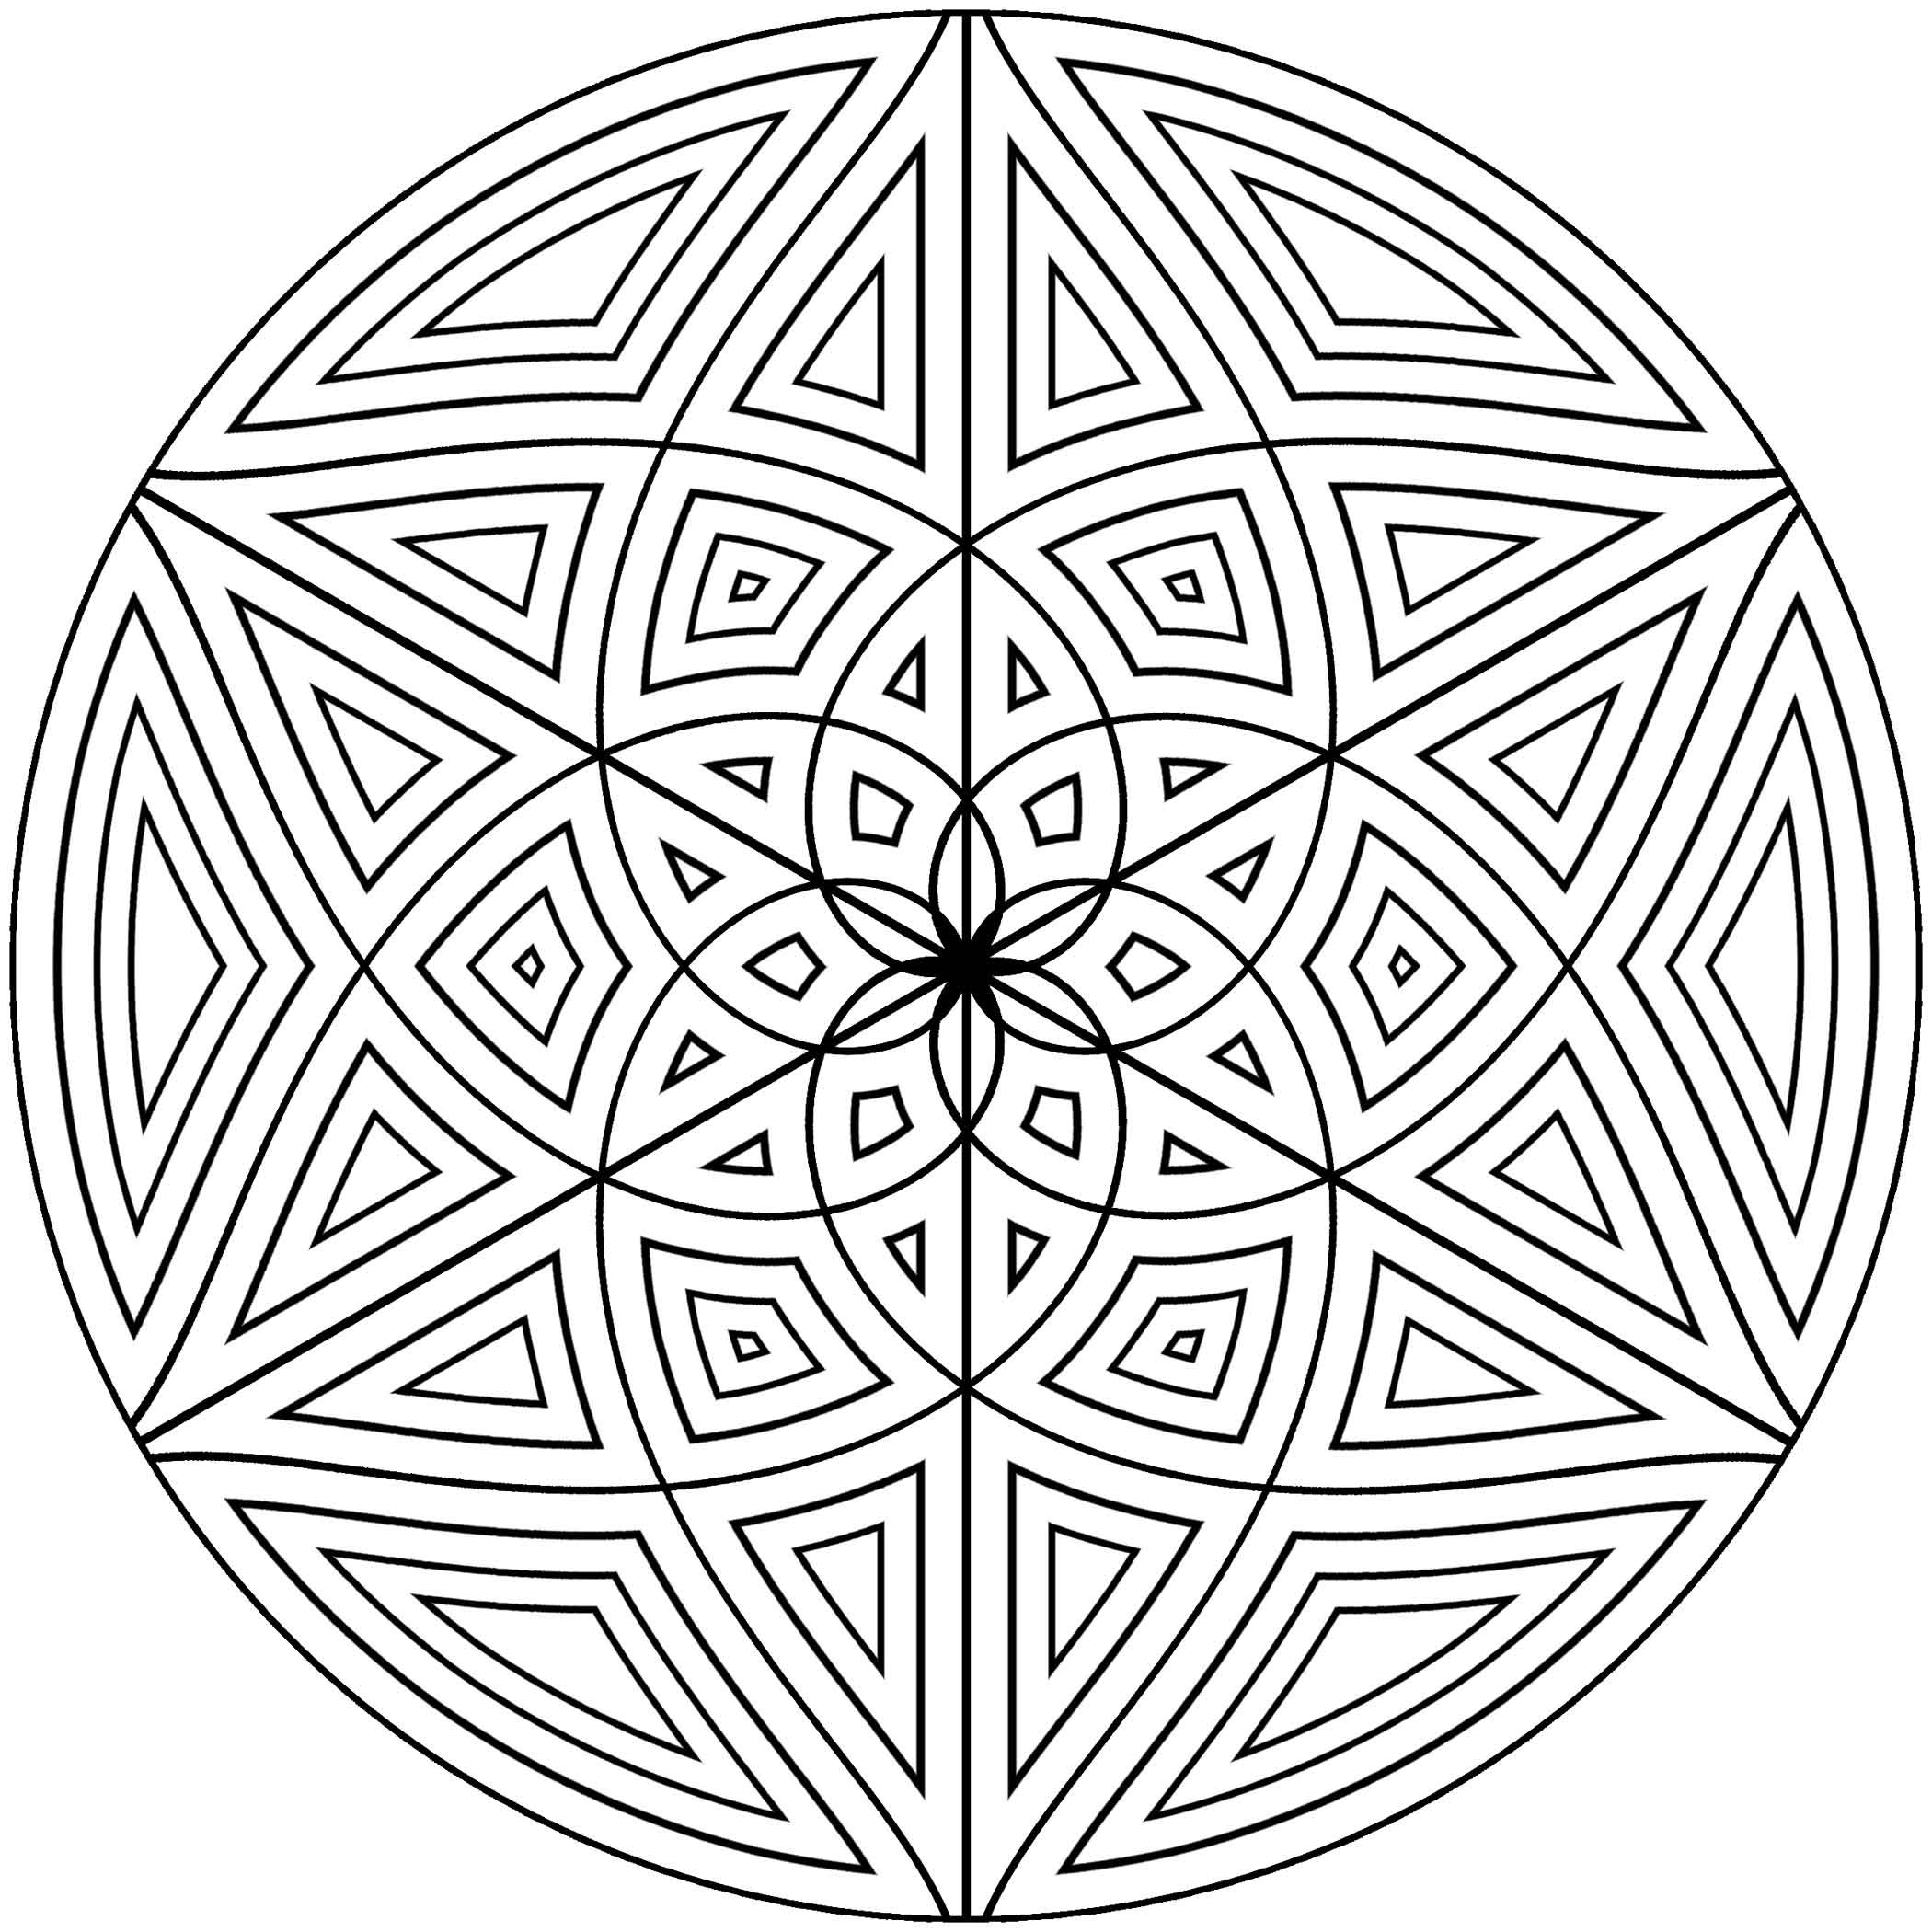 free coloring pages with designs graphic design coloring pages at getcoloringscom free designs pages with free coloring